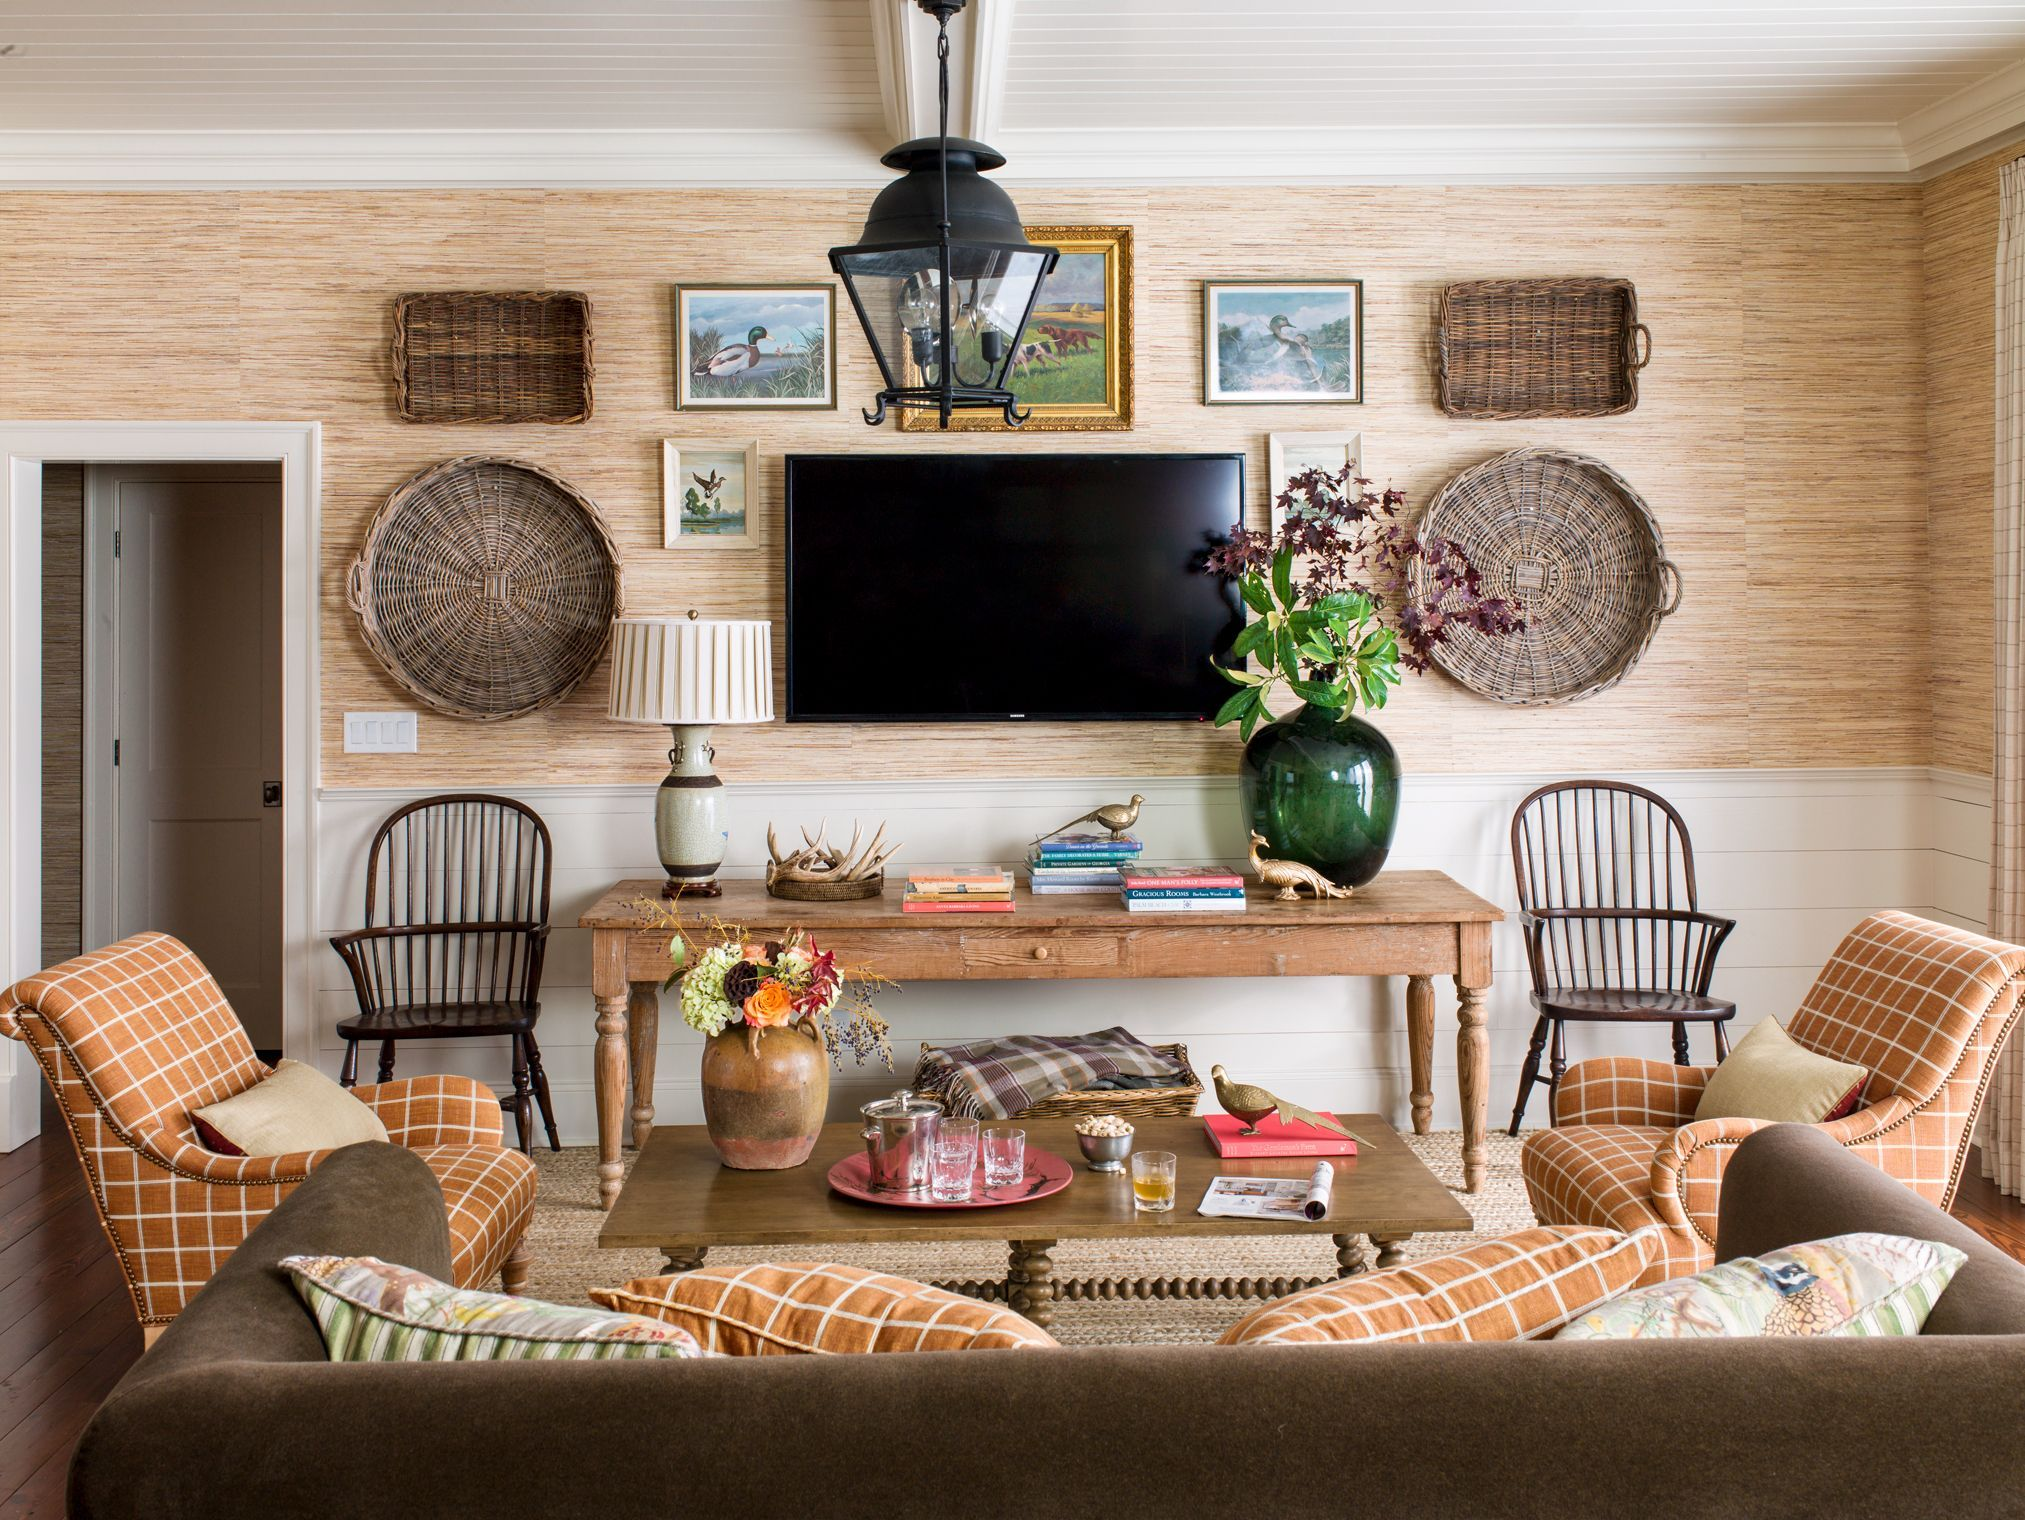 15 Family Room Decorating Ideas - Easy Family Room Design Ideas